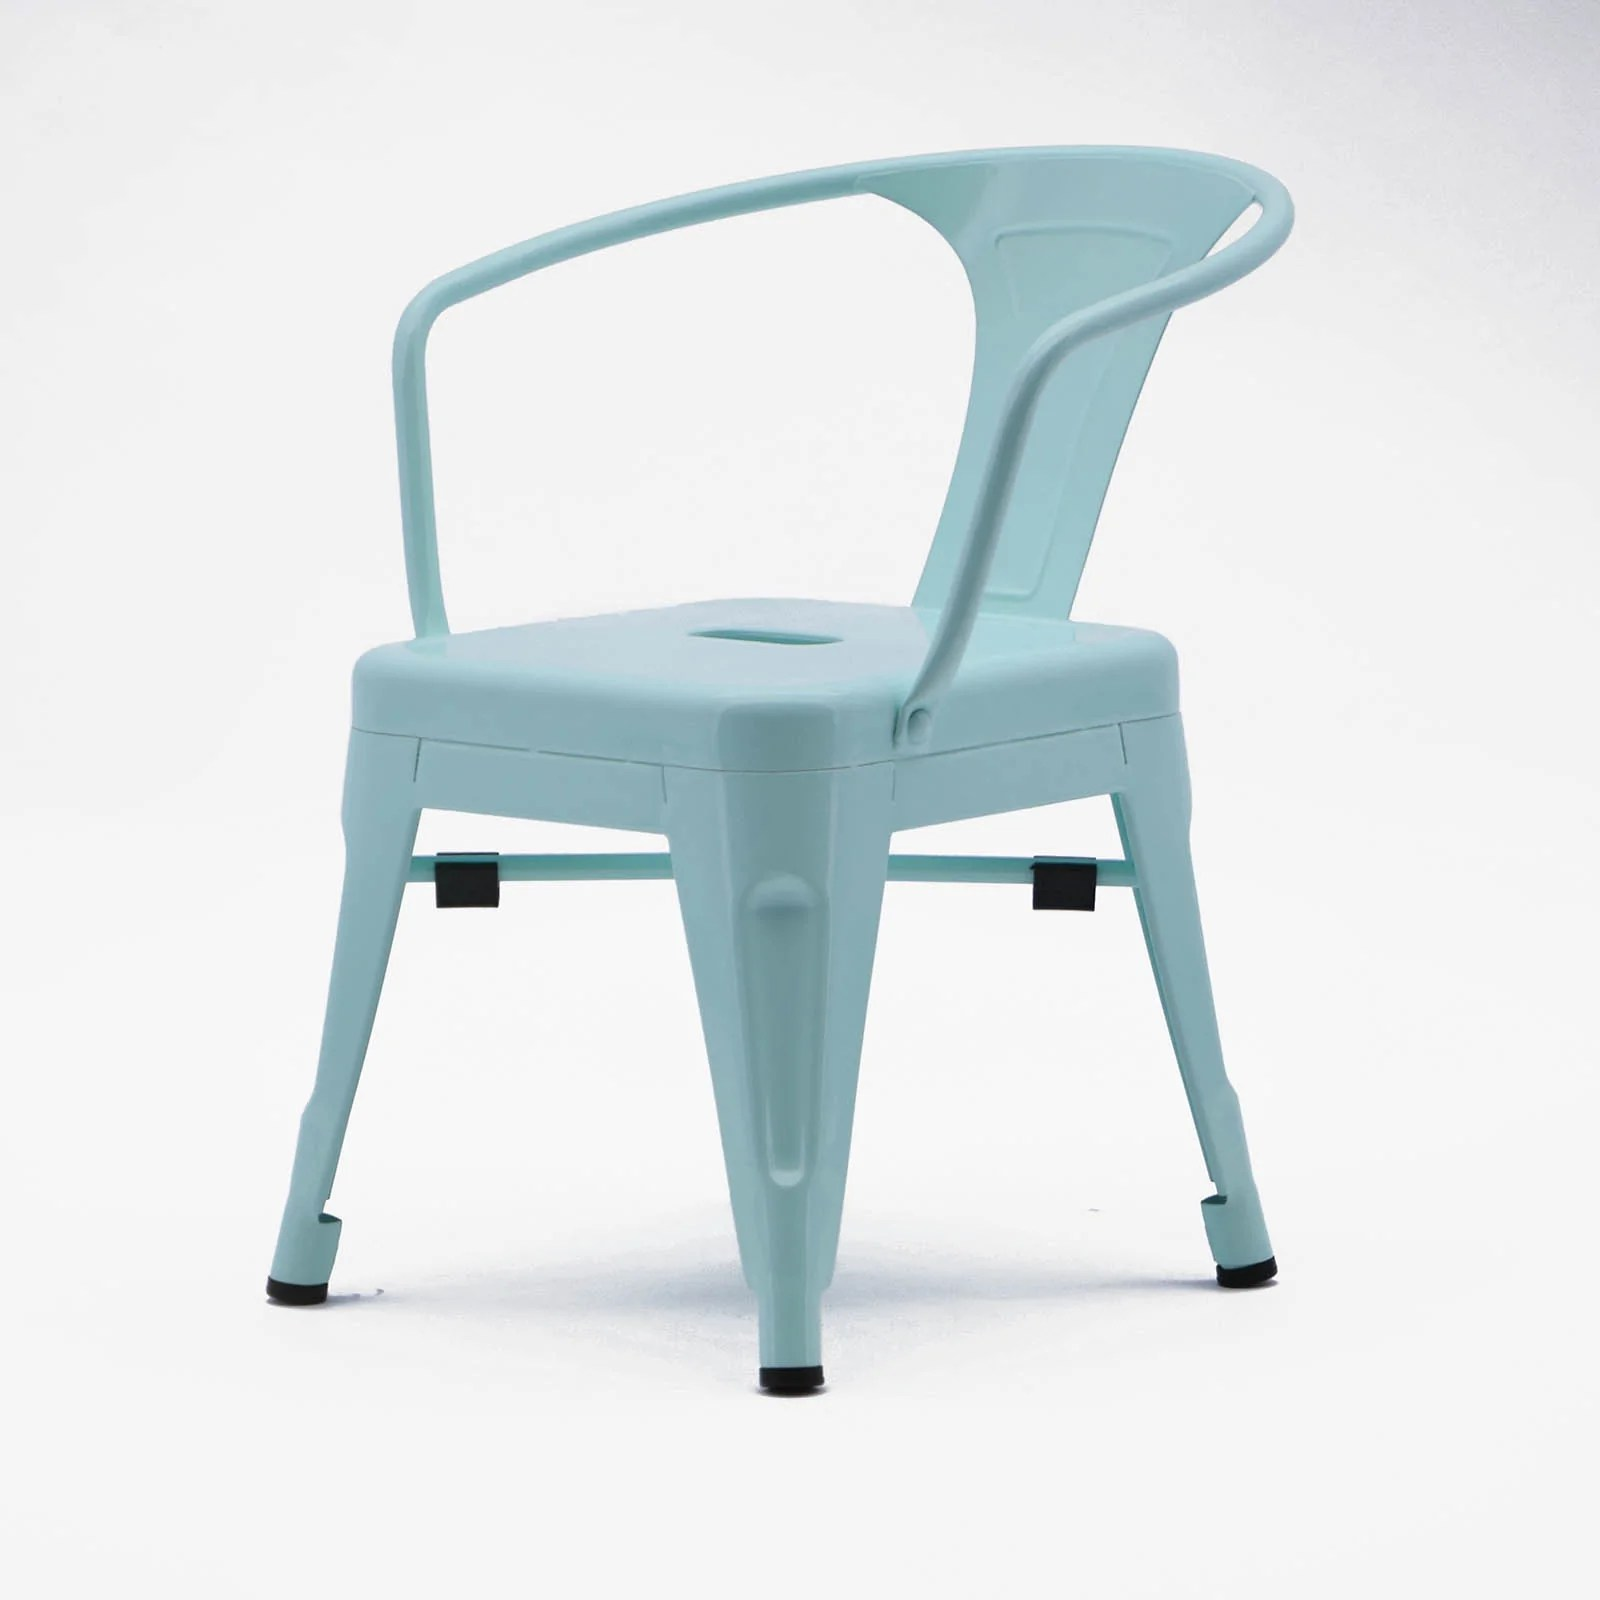 Plastic Kids Chairs Kids Chair Plastic K01 B